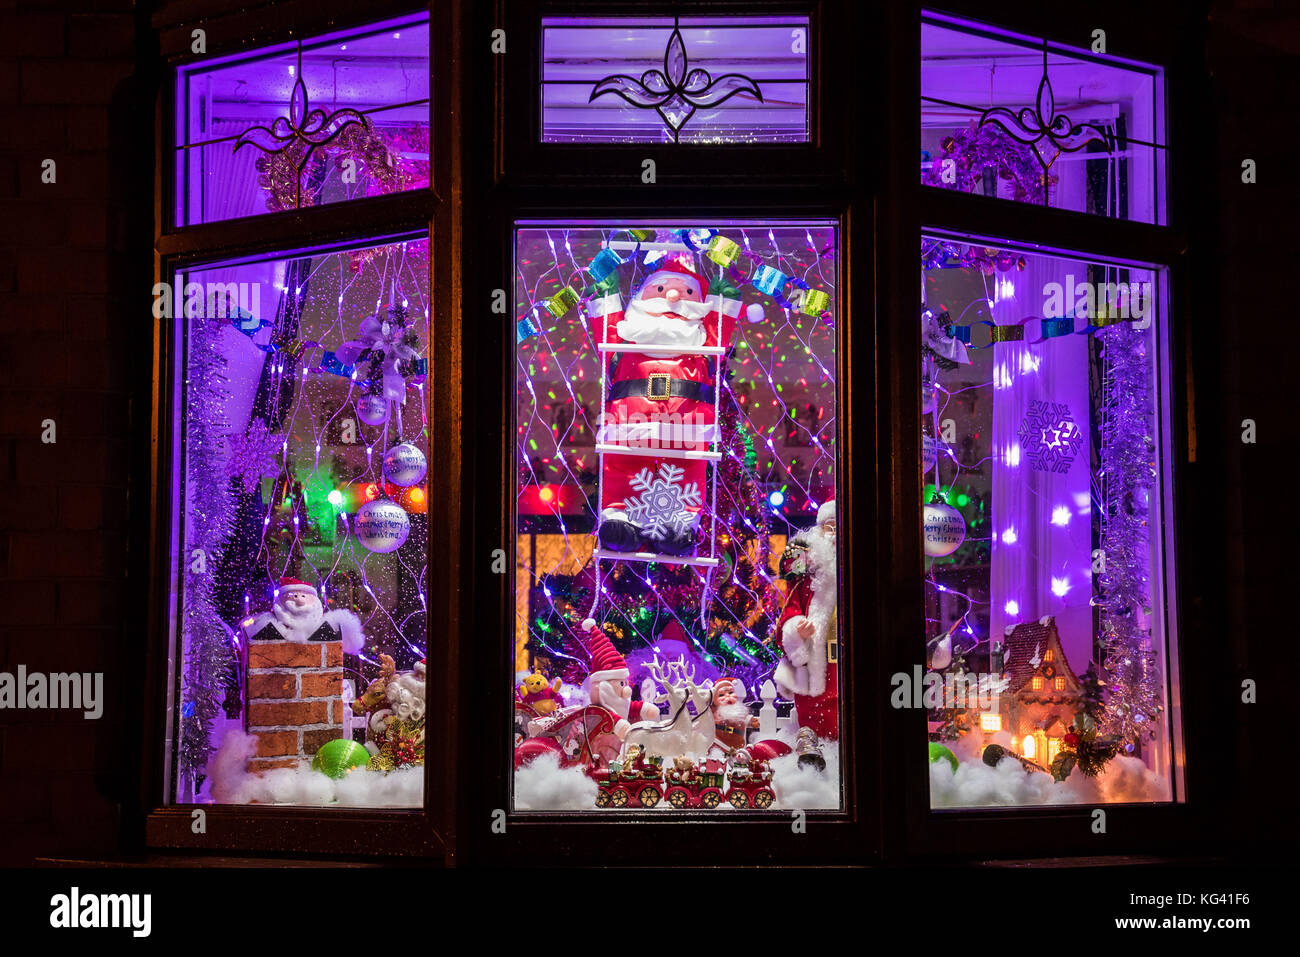 An extravagant display of Christmas decorations in a domestic ...